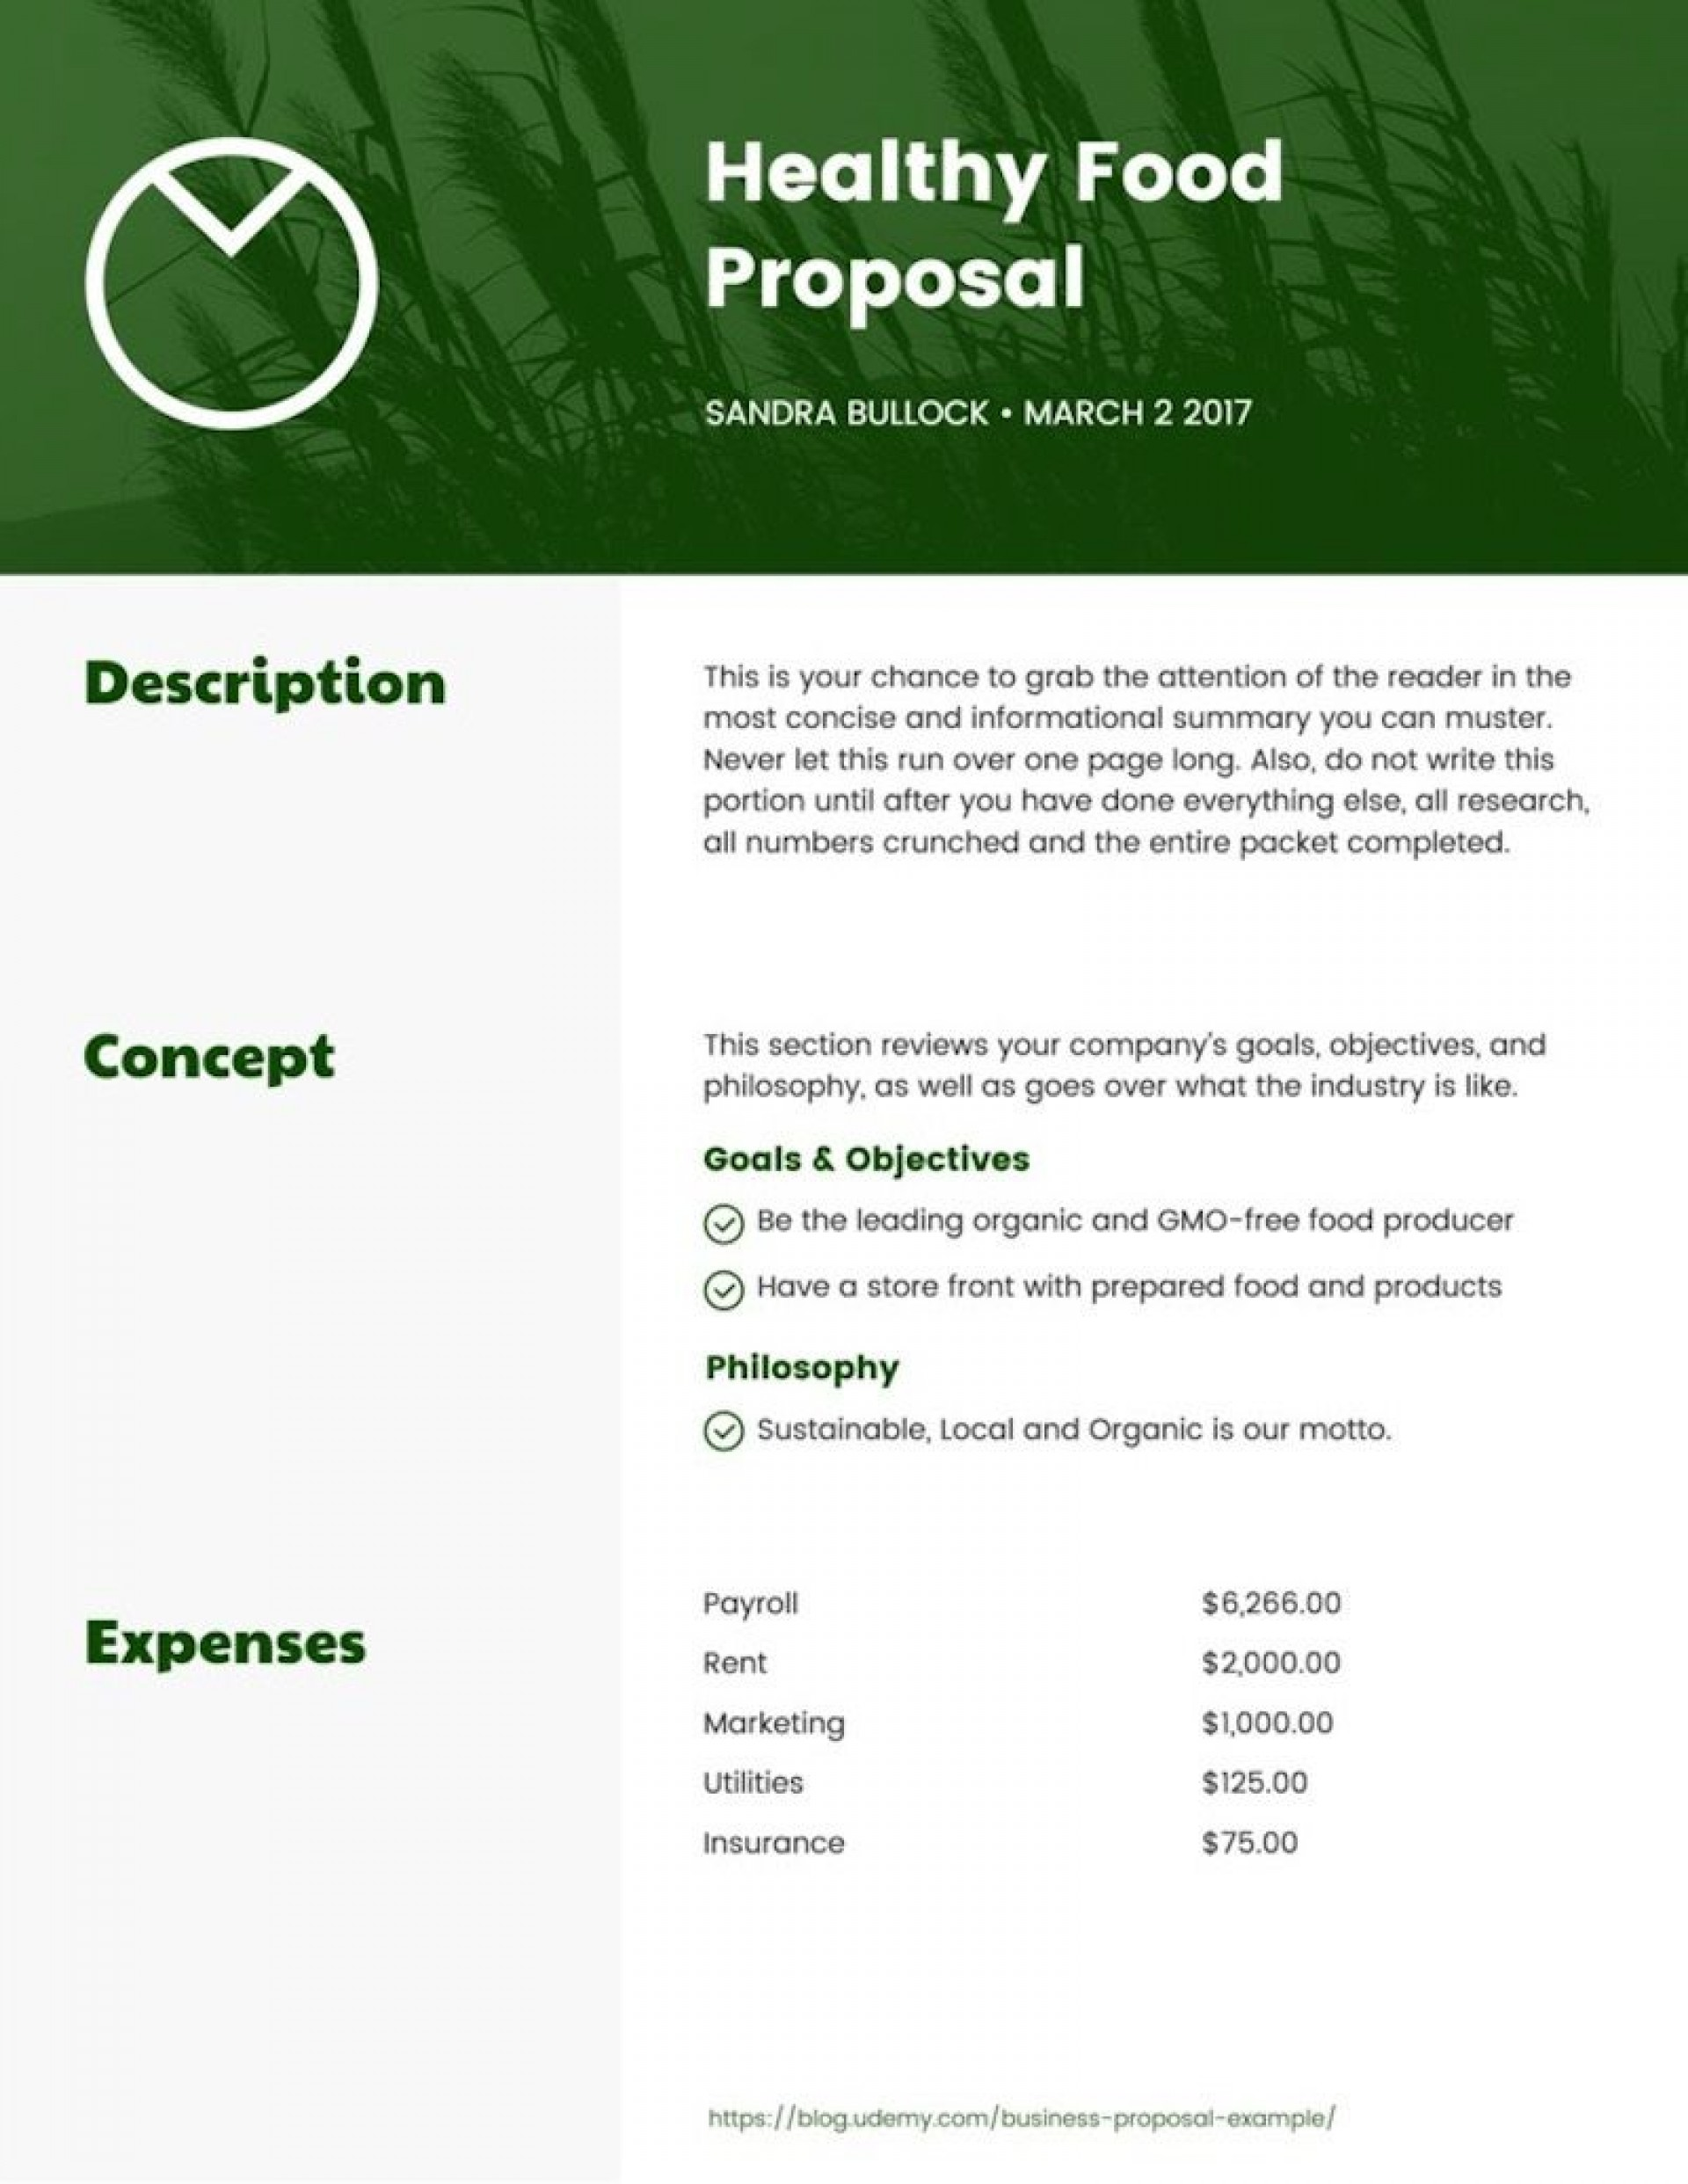 004 Breathtaking Simple Busines Proposal Template Image  Example Word Doc Basic Plan Free1920